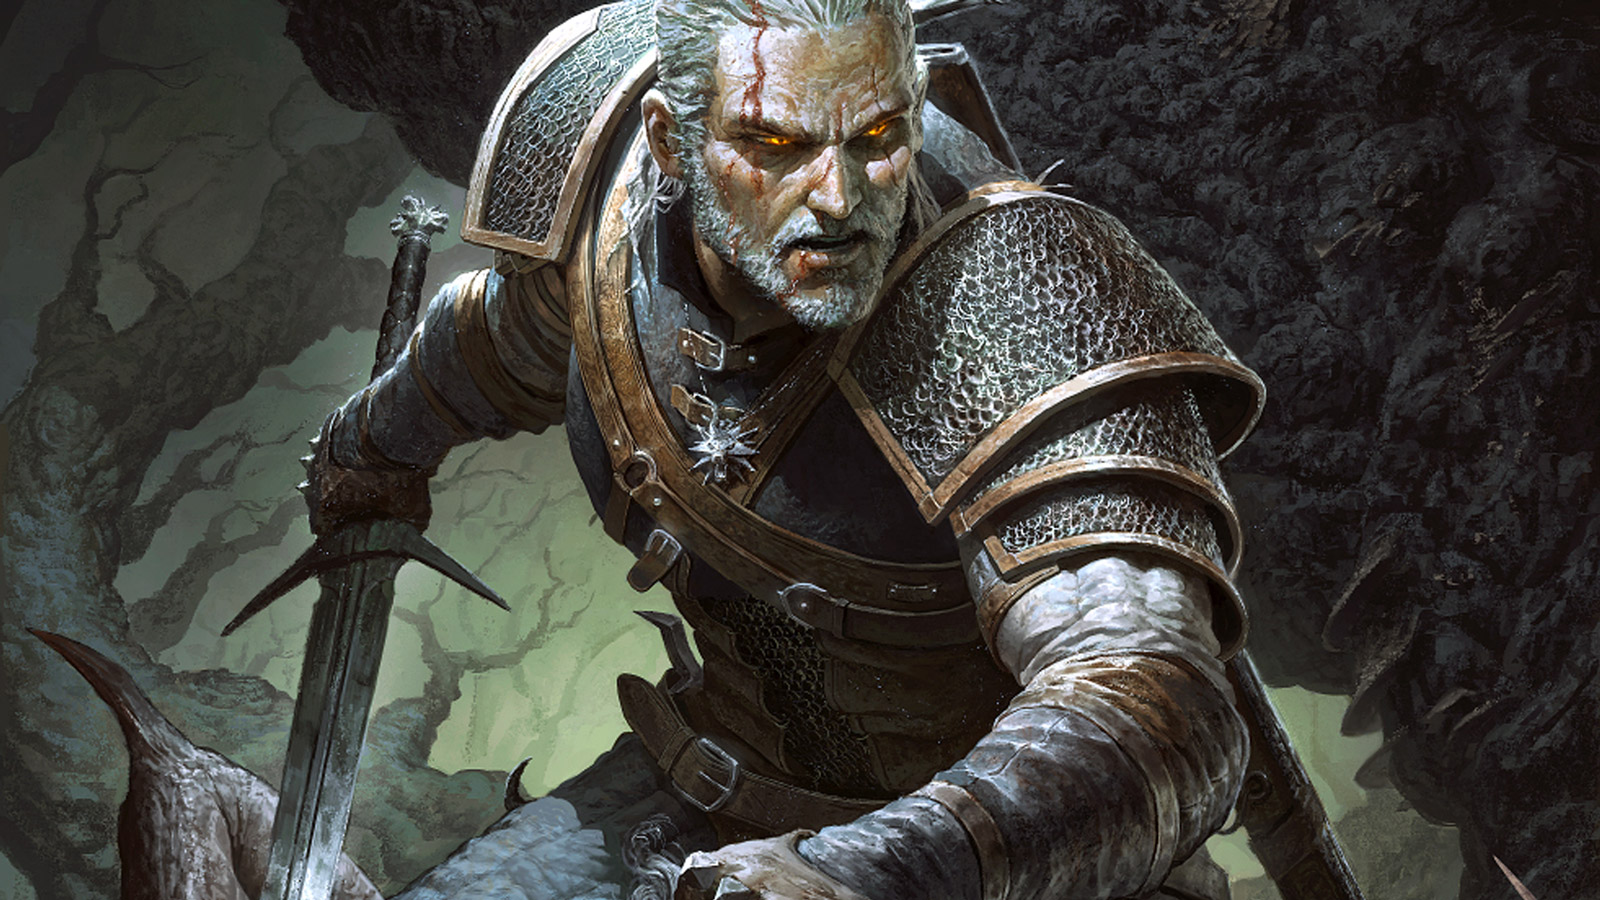 The Witcher 3 Wallpaper in 1600x900